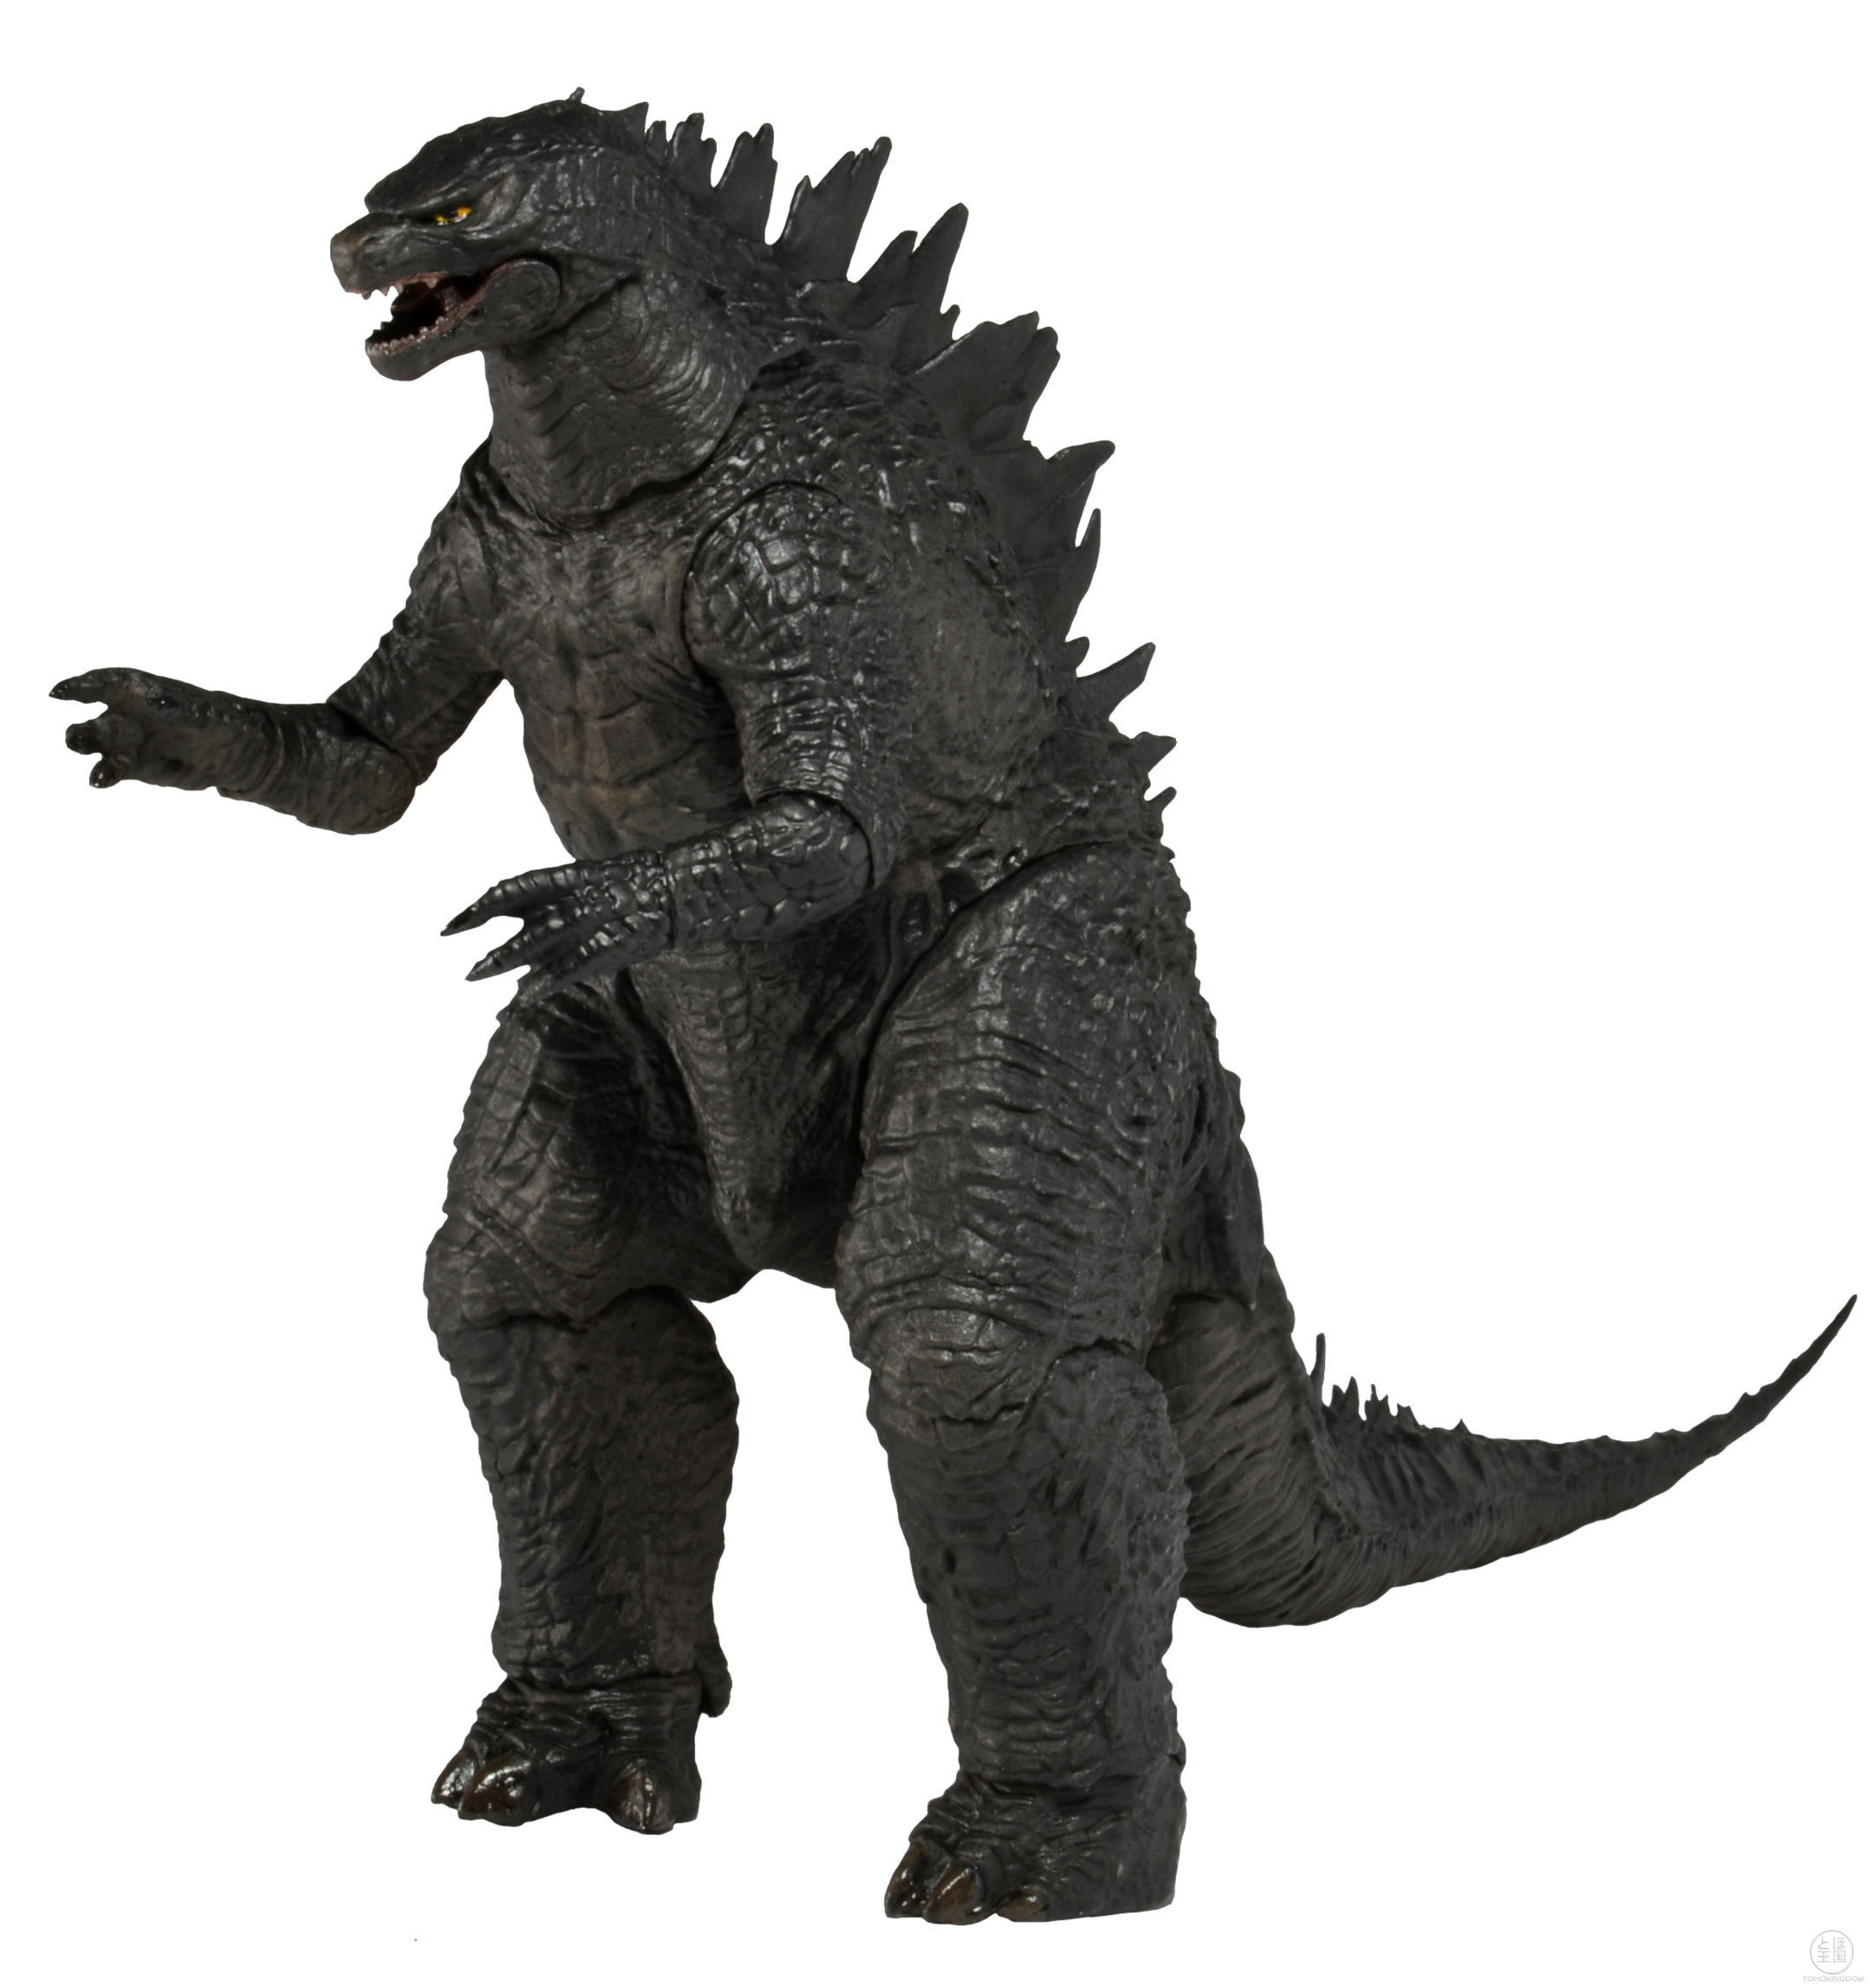 WBCP partner NECA offers the detailed 12' Head-to-Tail Godzilla figure. (PRNewsFoto/Warner Bros. Consumer Products)